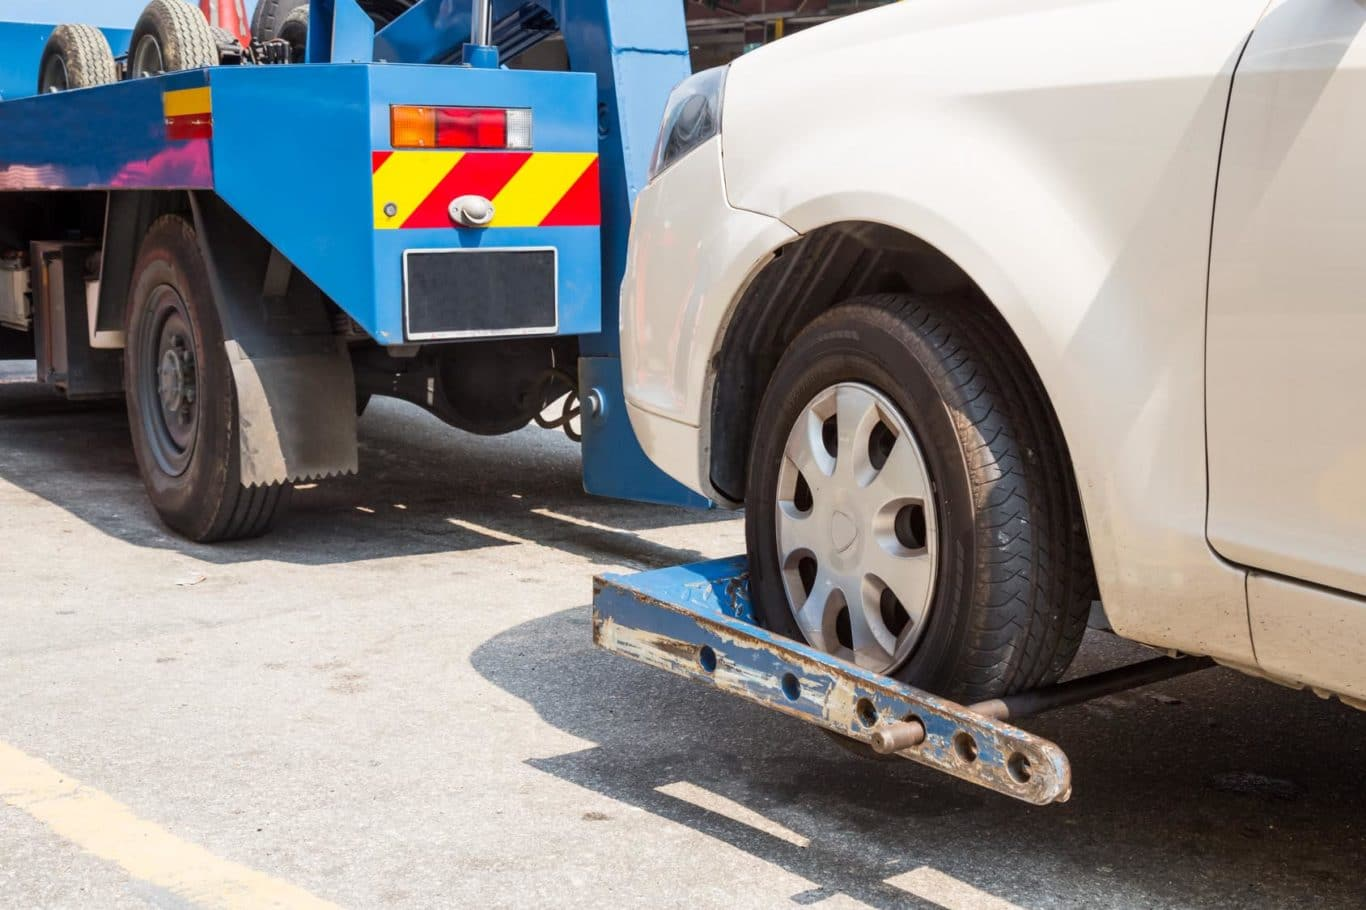 Rathmines expert Towing services